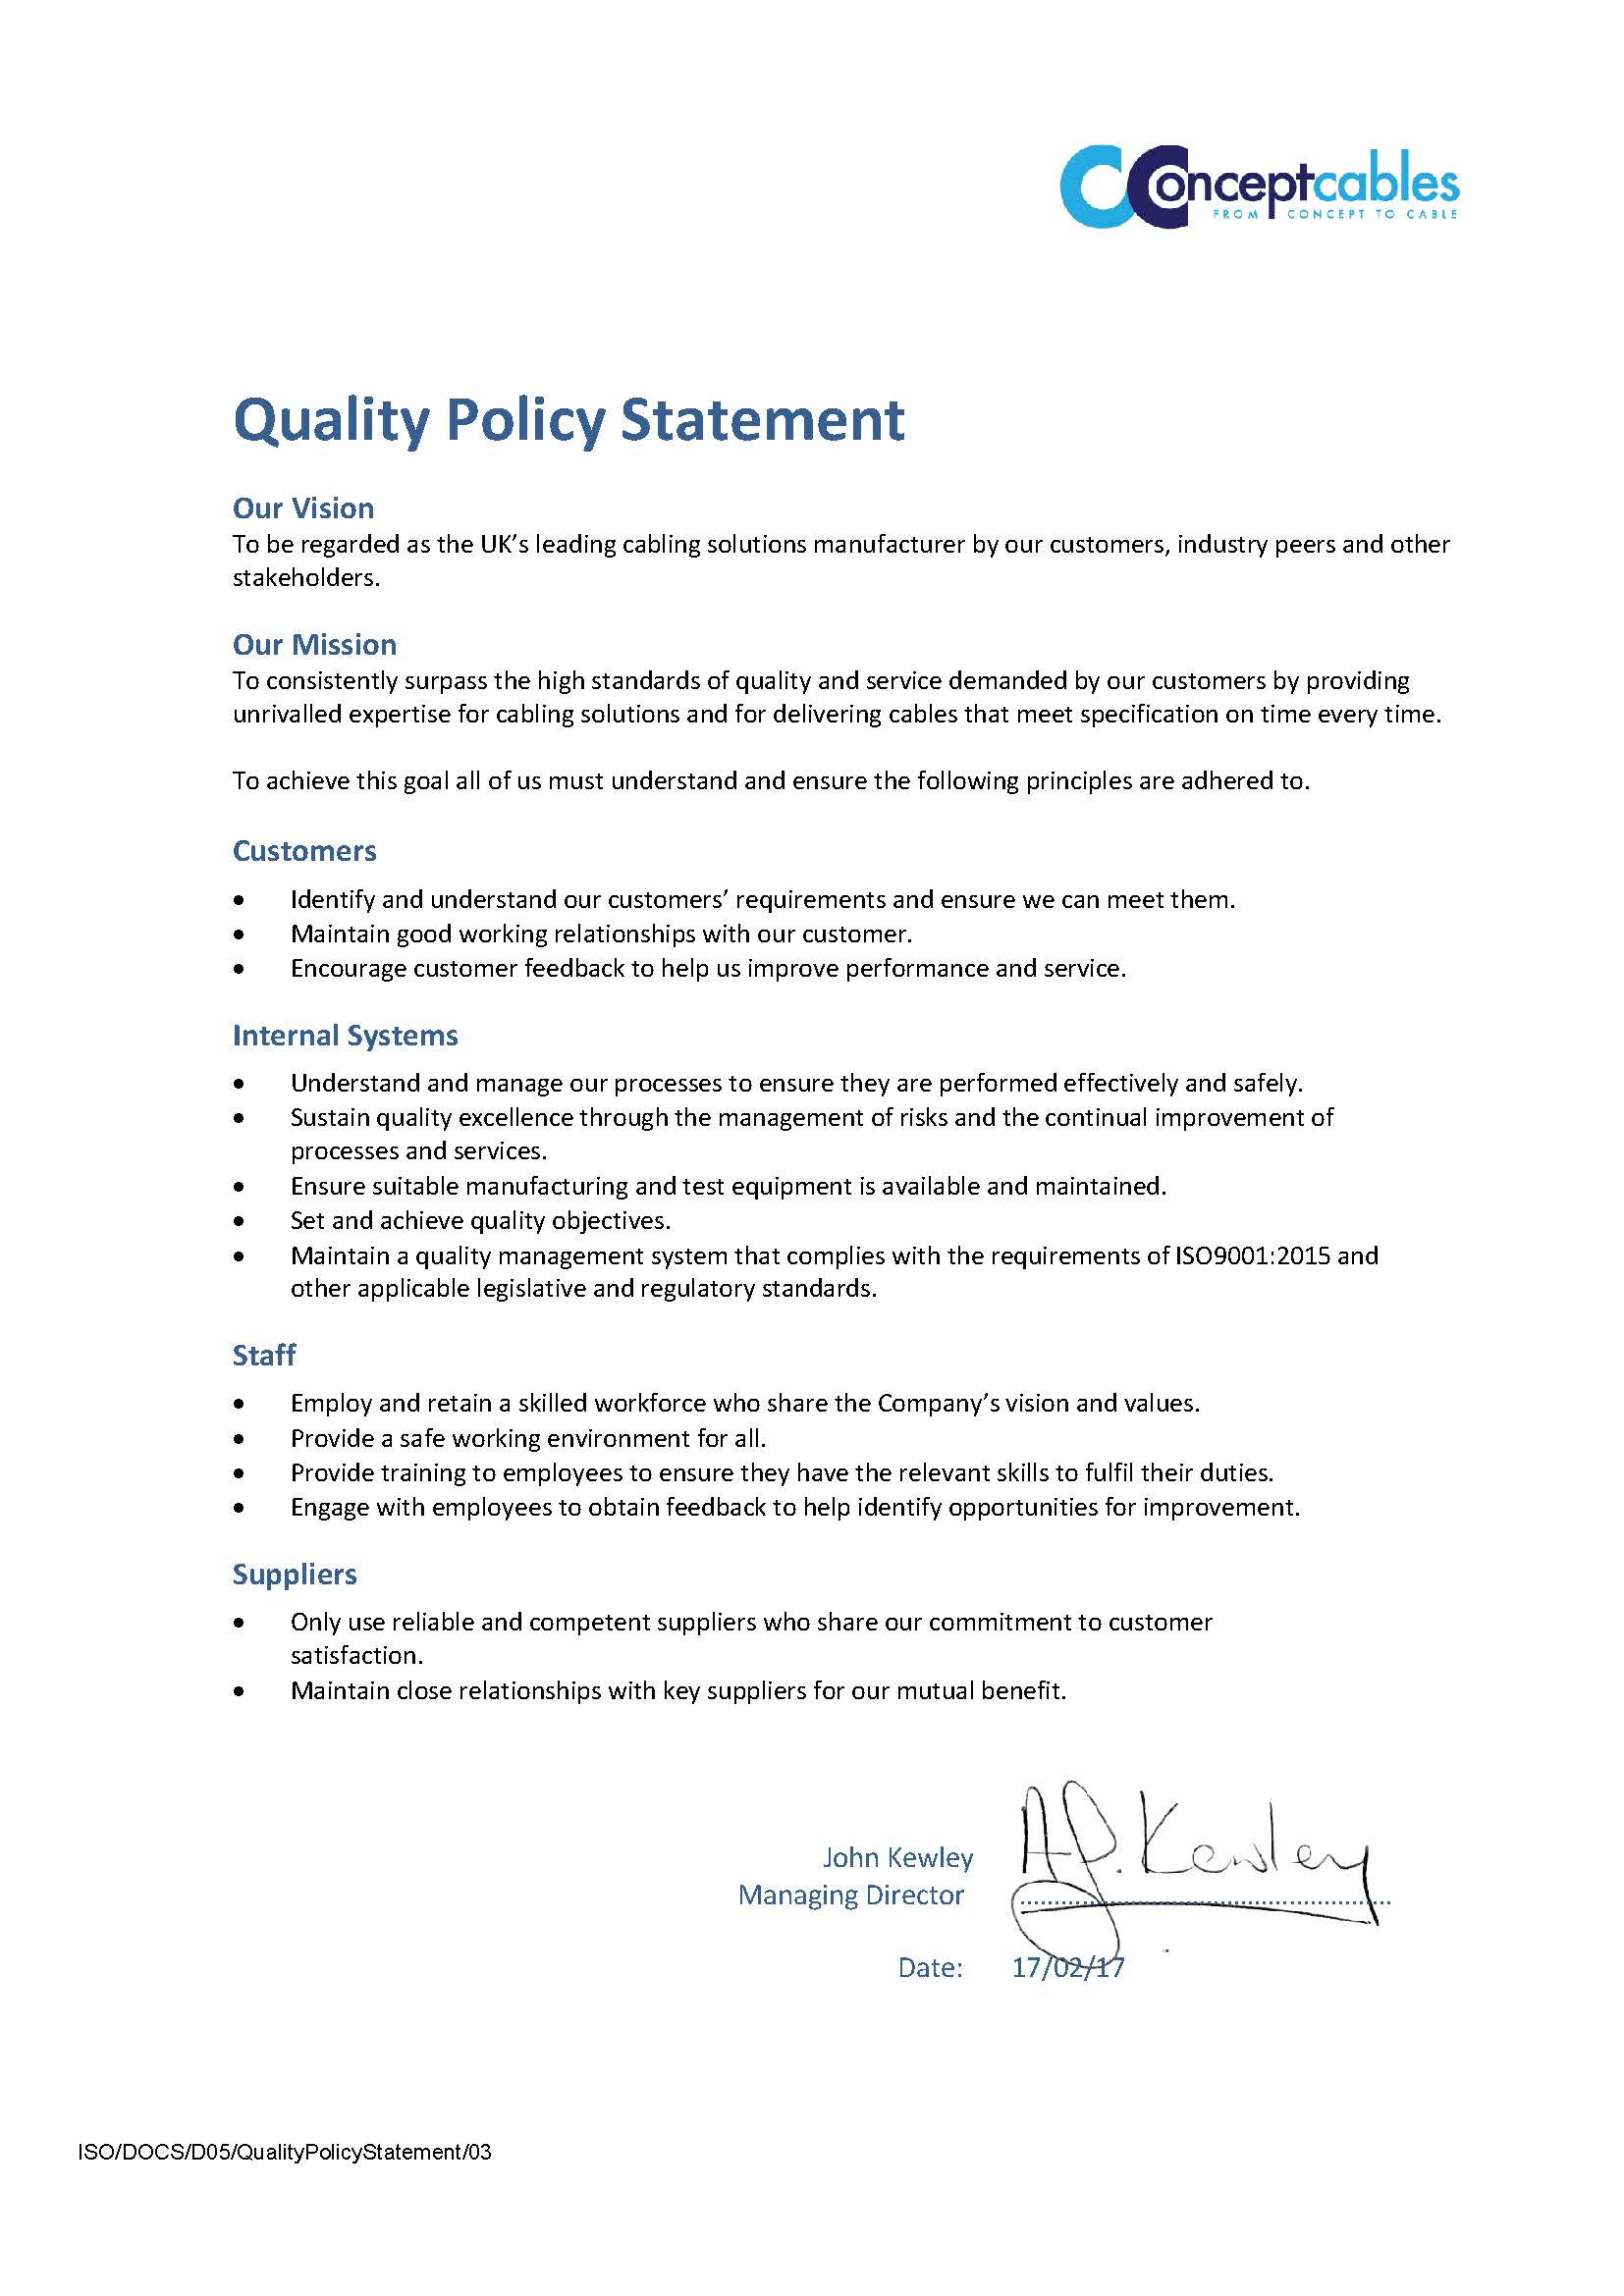 D05 Quality Policy Statement.03 e502a